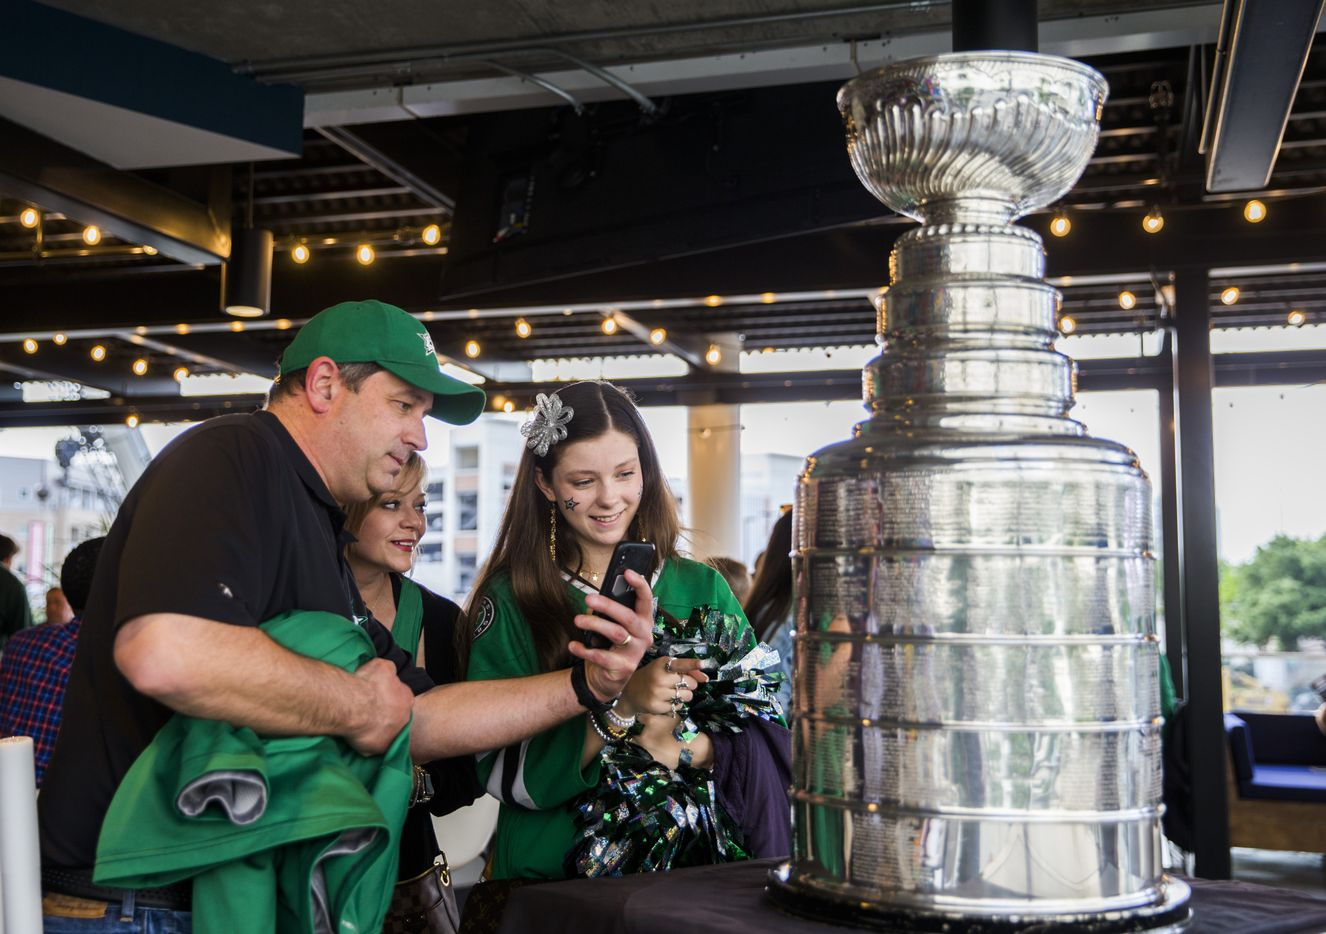 Fans take photos with the Stanley Cup at DIBS on VICTORY before Game 6 of the Stars-Predators series at American Airlines Center.